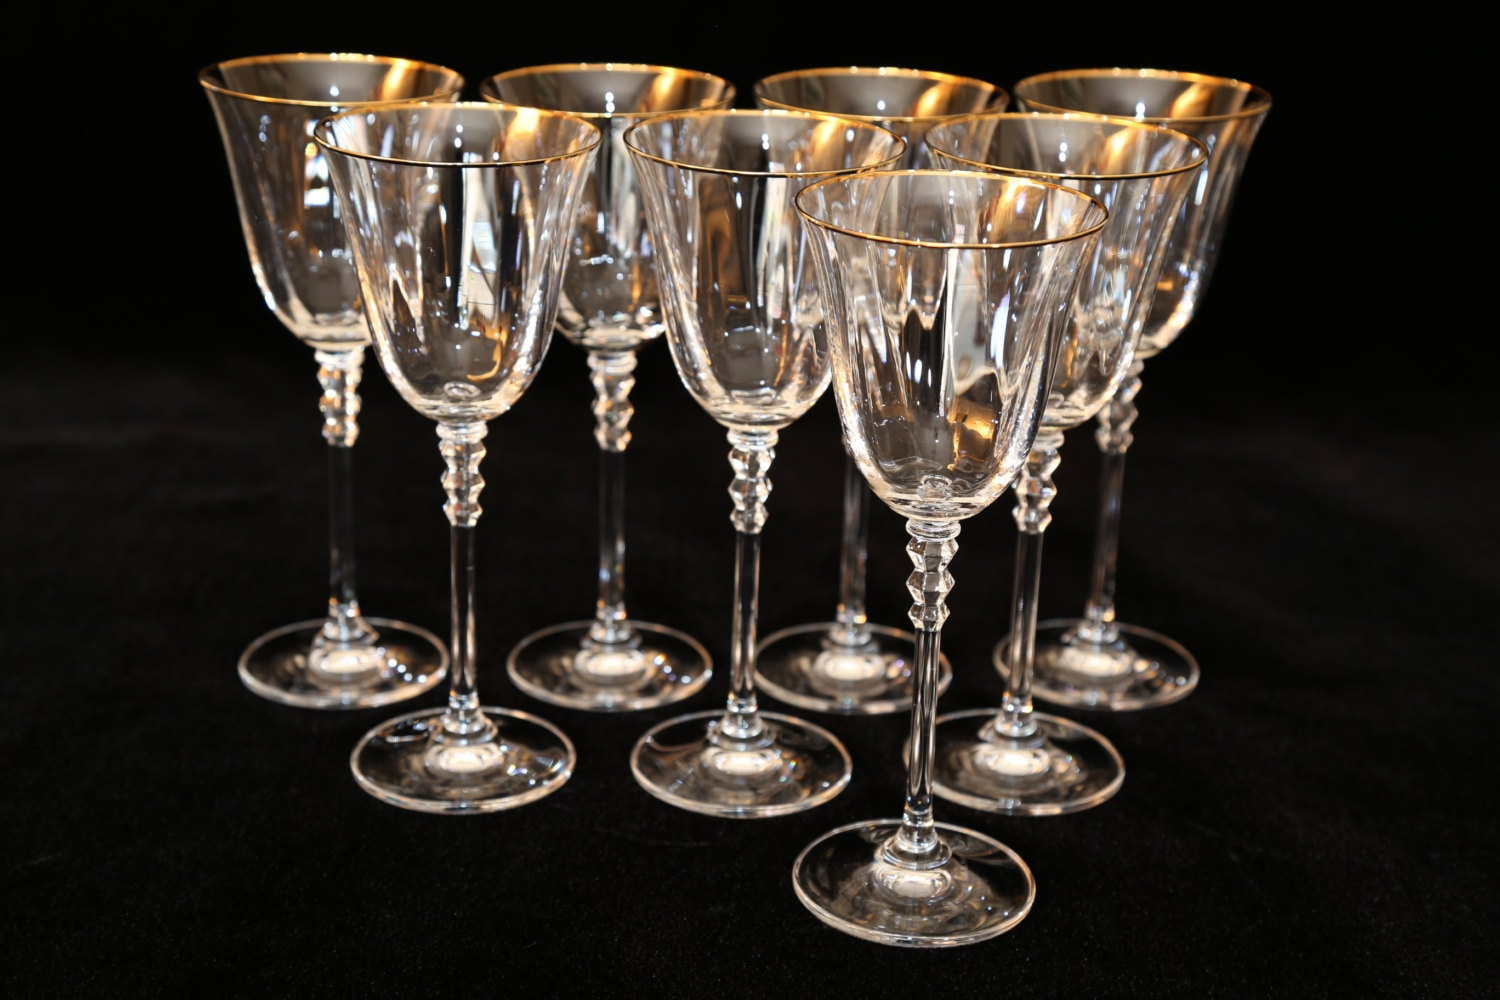 Crystal wine glass gold rimmed crystal wine glass optic - Lenox gold rimmed wine glasses ...